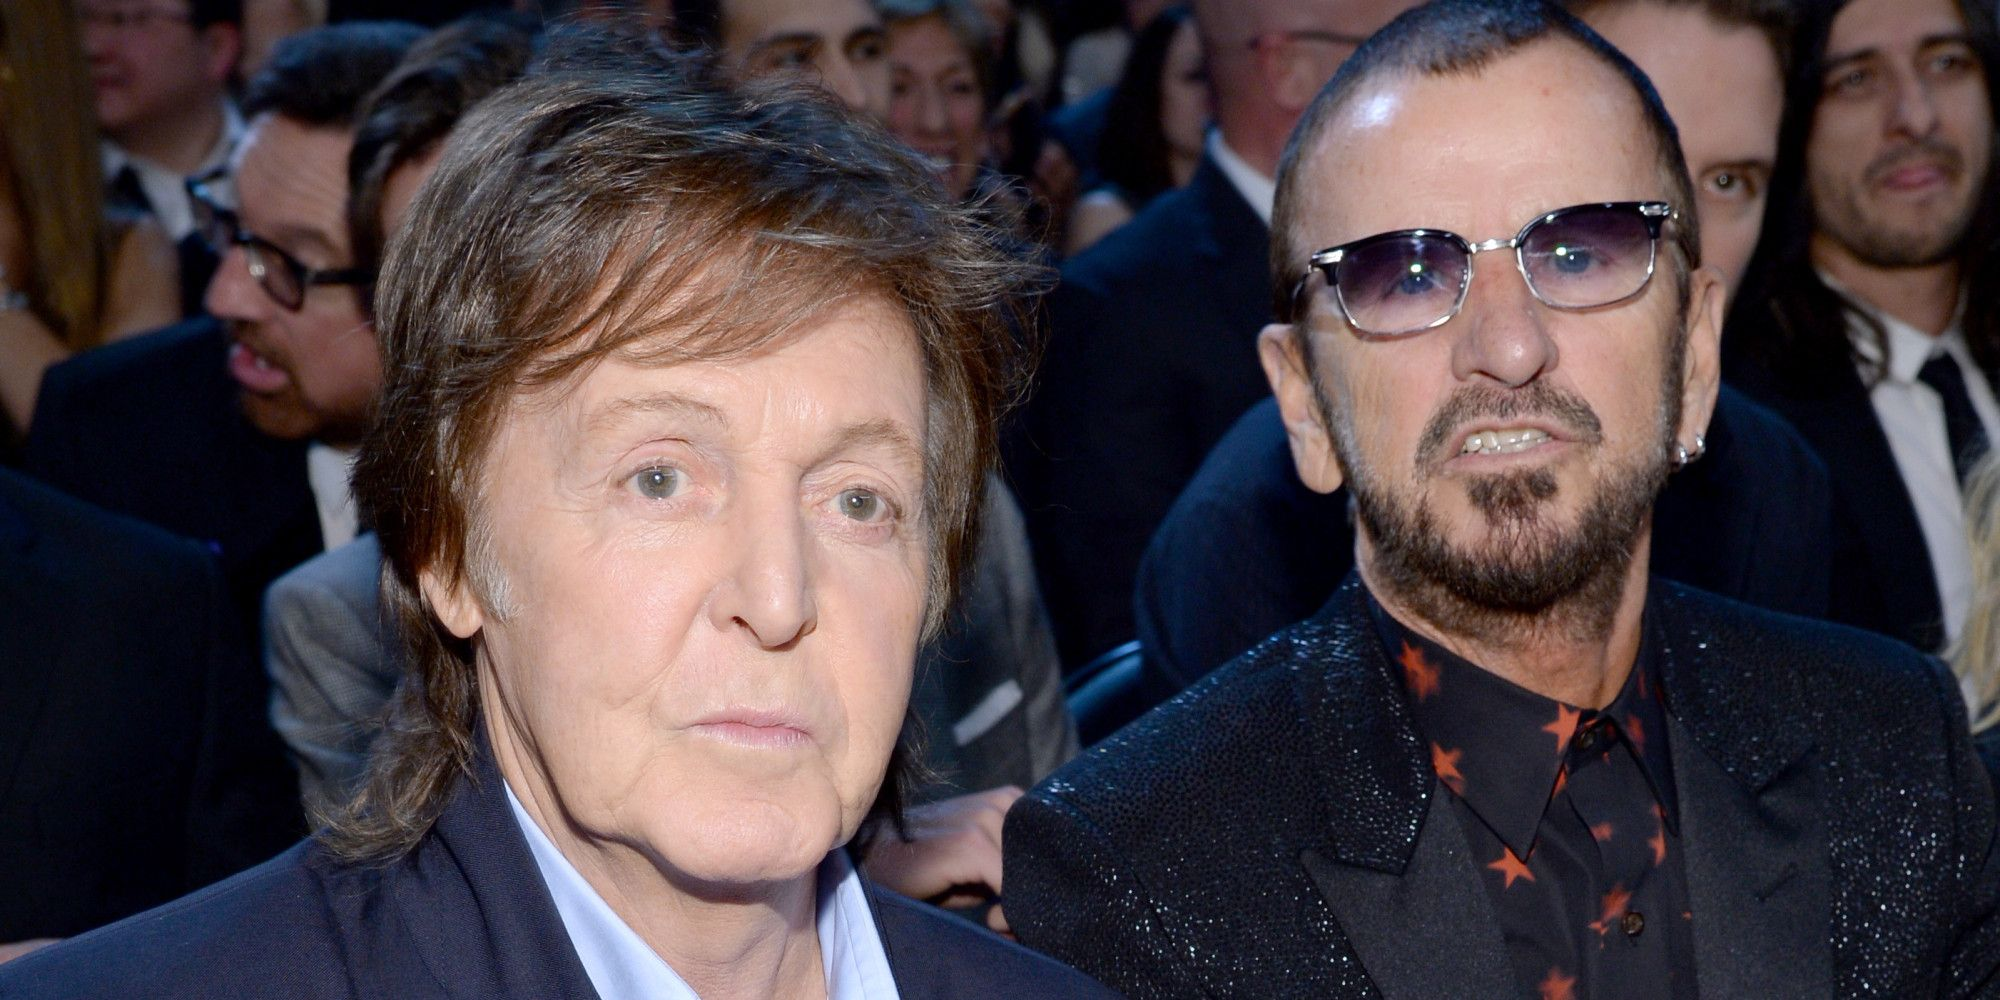 Paul McCartney Ringo Starr Reunite At The Grammys 26 January 2014